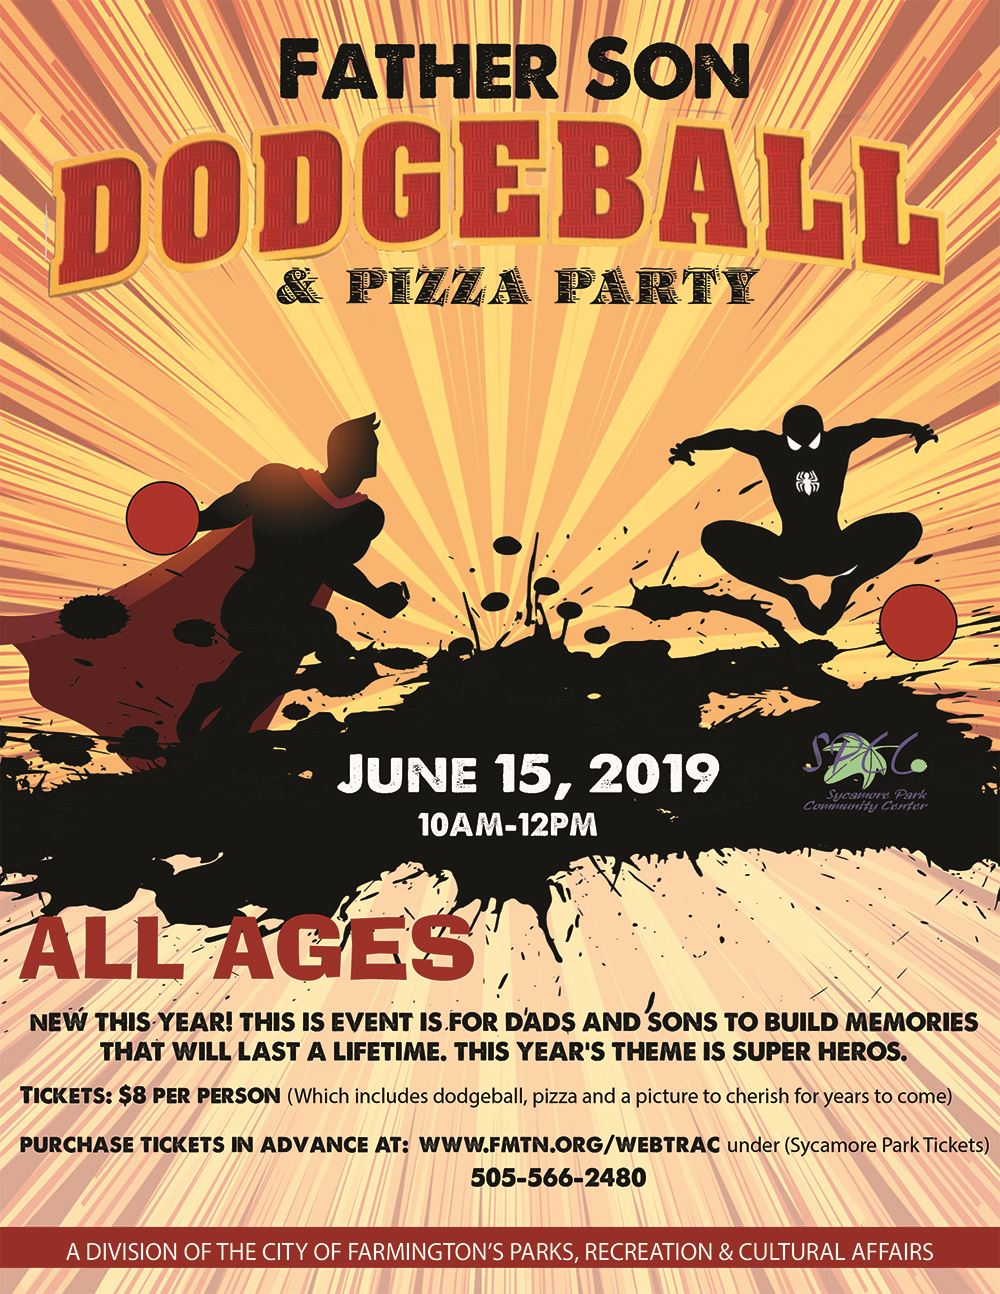 Father Son Dodgeball flyer